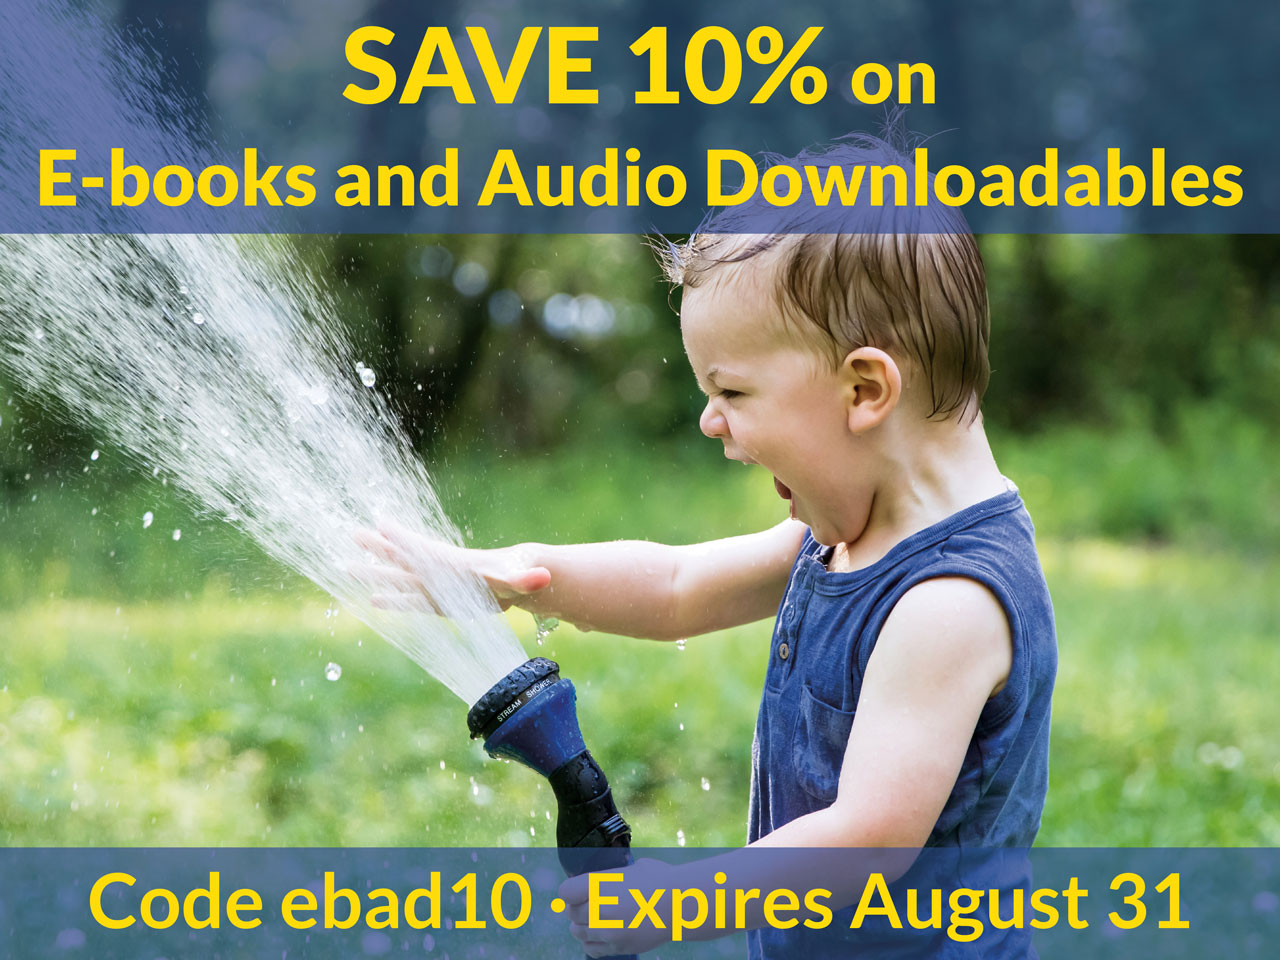 Save 10% on books and audio downloads